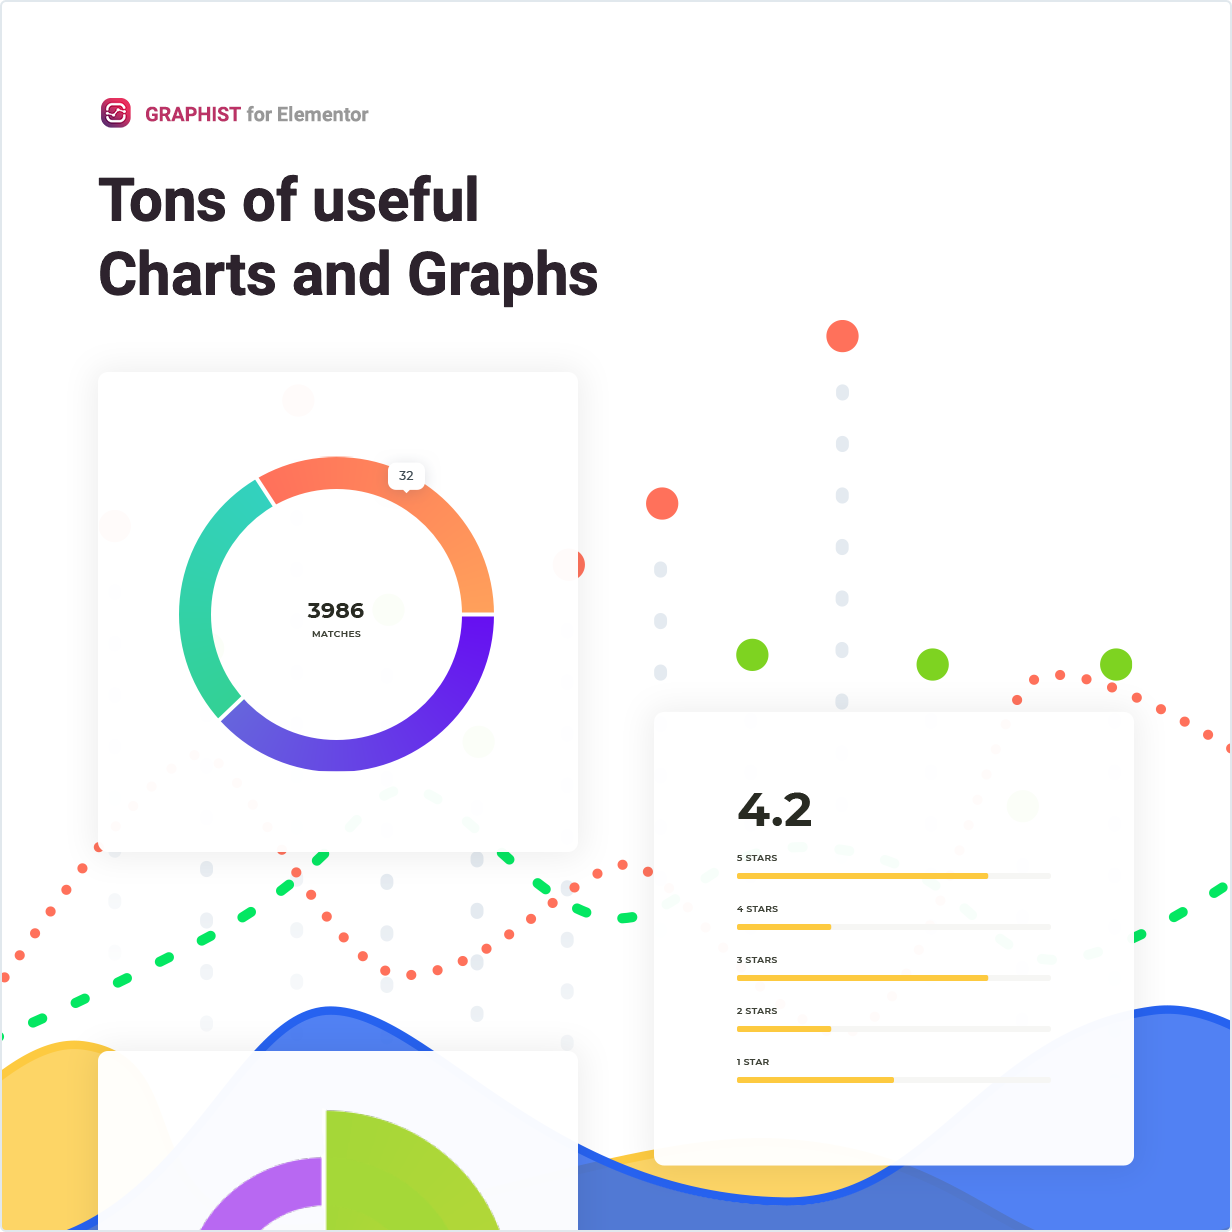 Tons of useful Charts and Graphs